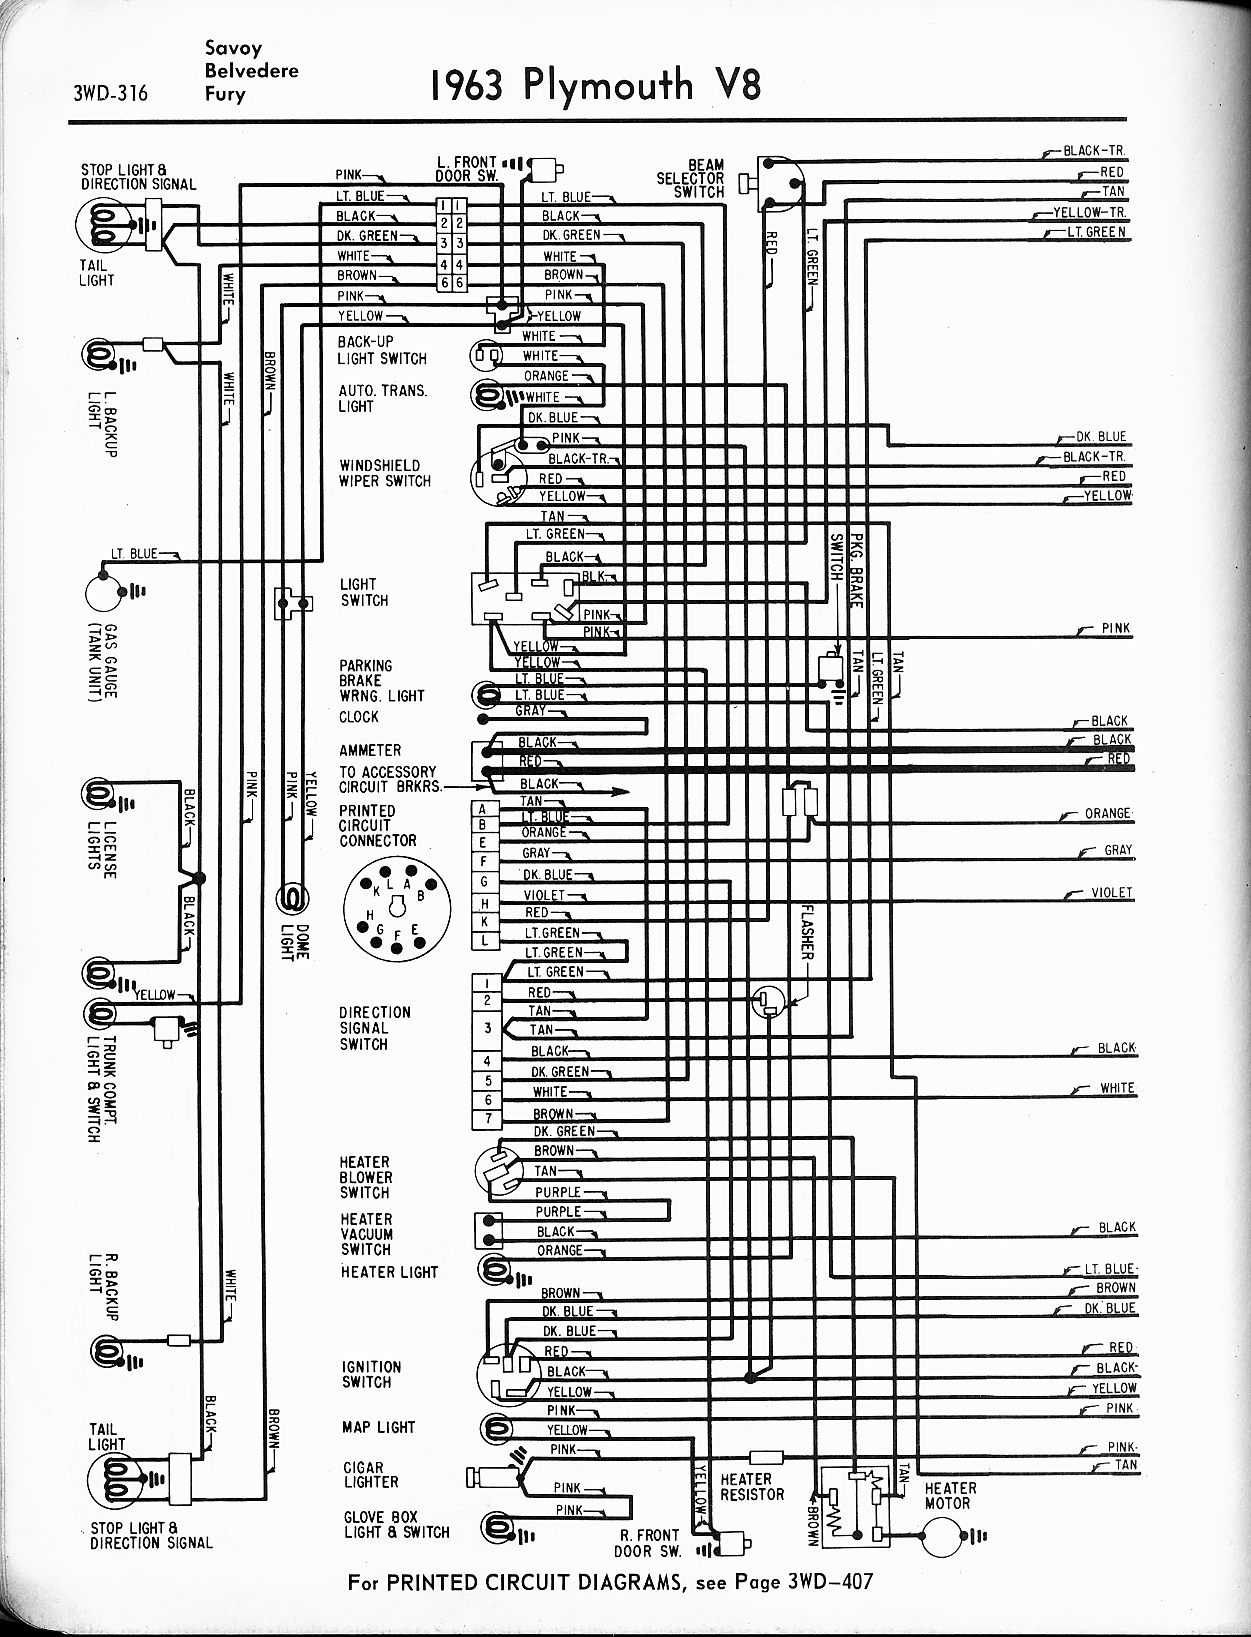 MWire5765 316 3800 series 2 wiring diagram gm ecu pinout \u2022 wiring diagrams j  at suagrazia.org